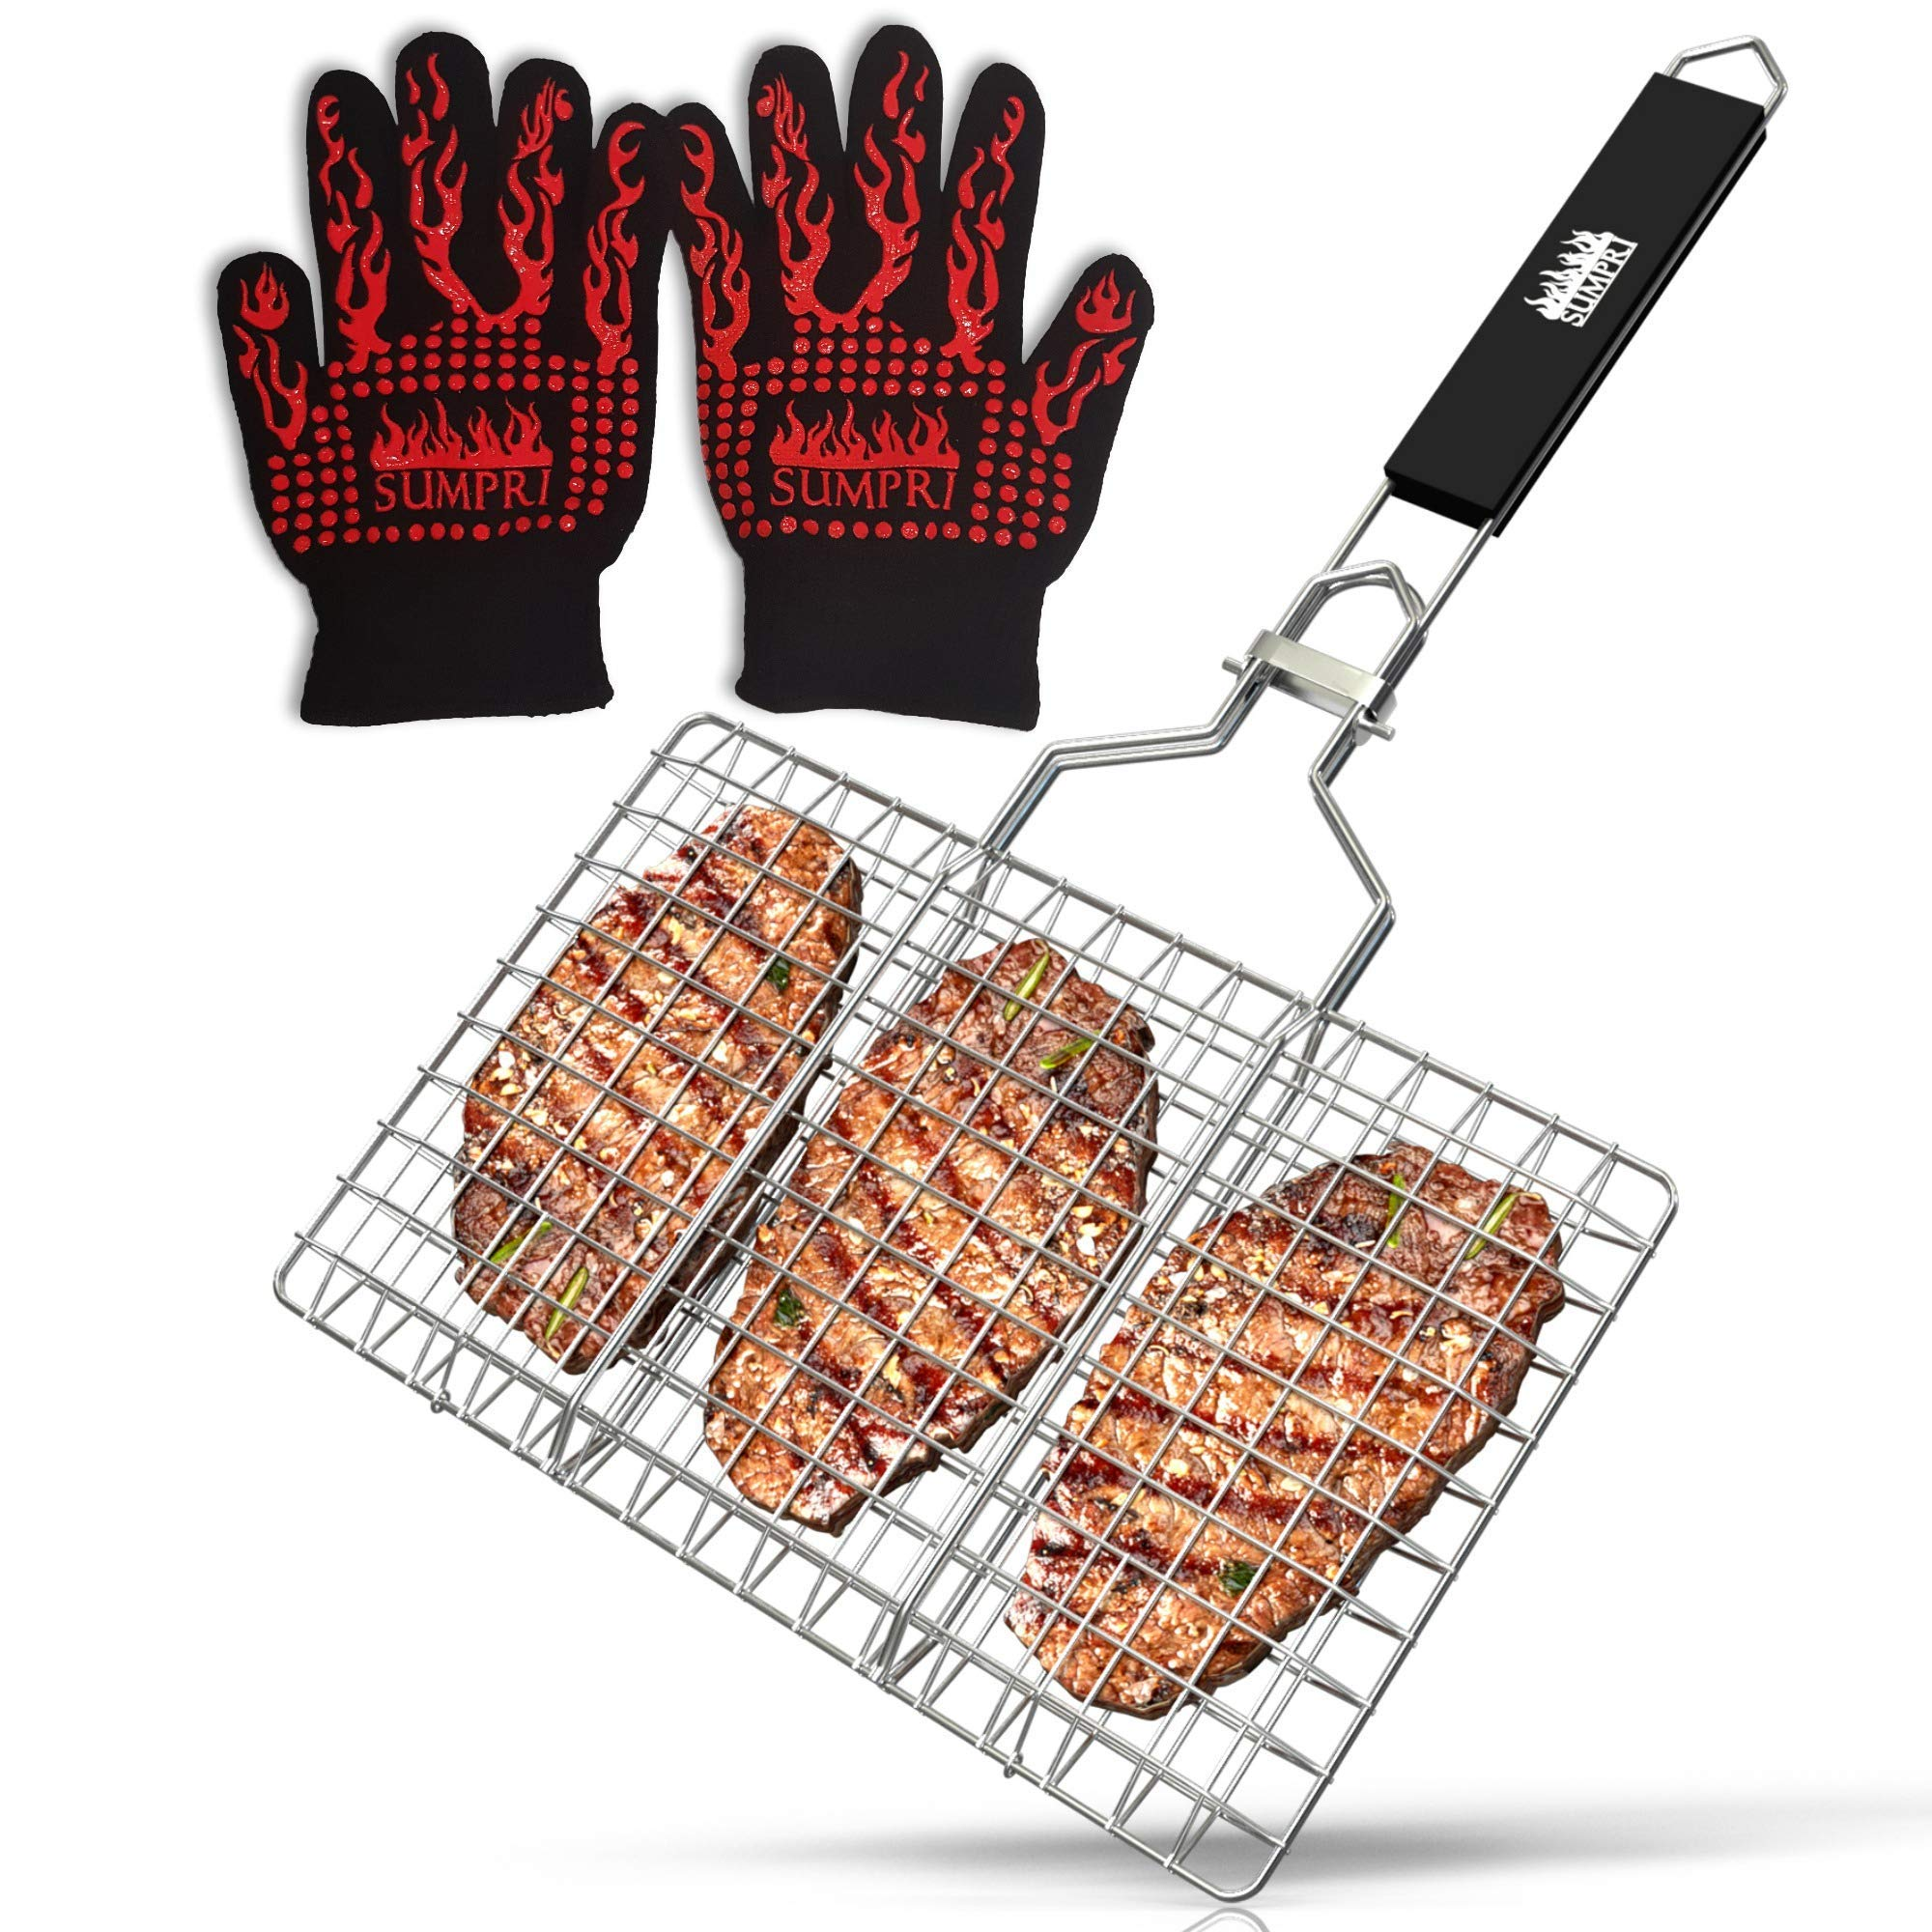 SUMPRI Barbecue Grill Basket -Portable Stainless Steel BBQ Grilling Basket With Removable Handle -Great For Veggies, Fish, Steak, Chicken, Chops, Shrimp &More【Bonus 932℉ Extreme Heat Resistant Gloves】 by SUMPRI